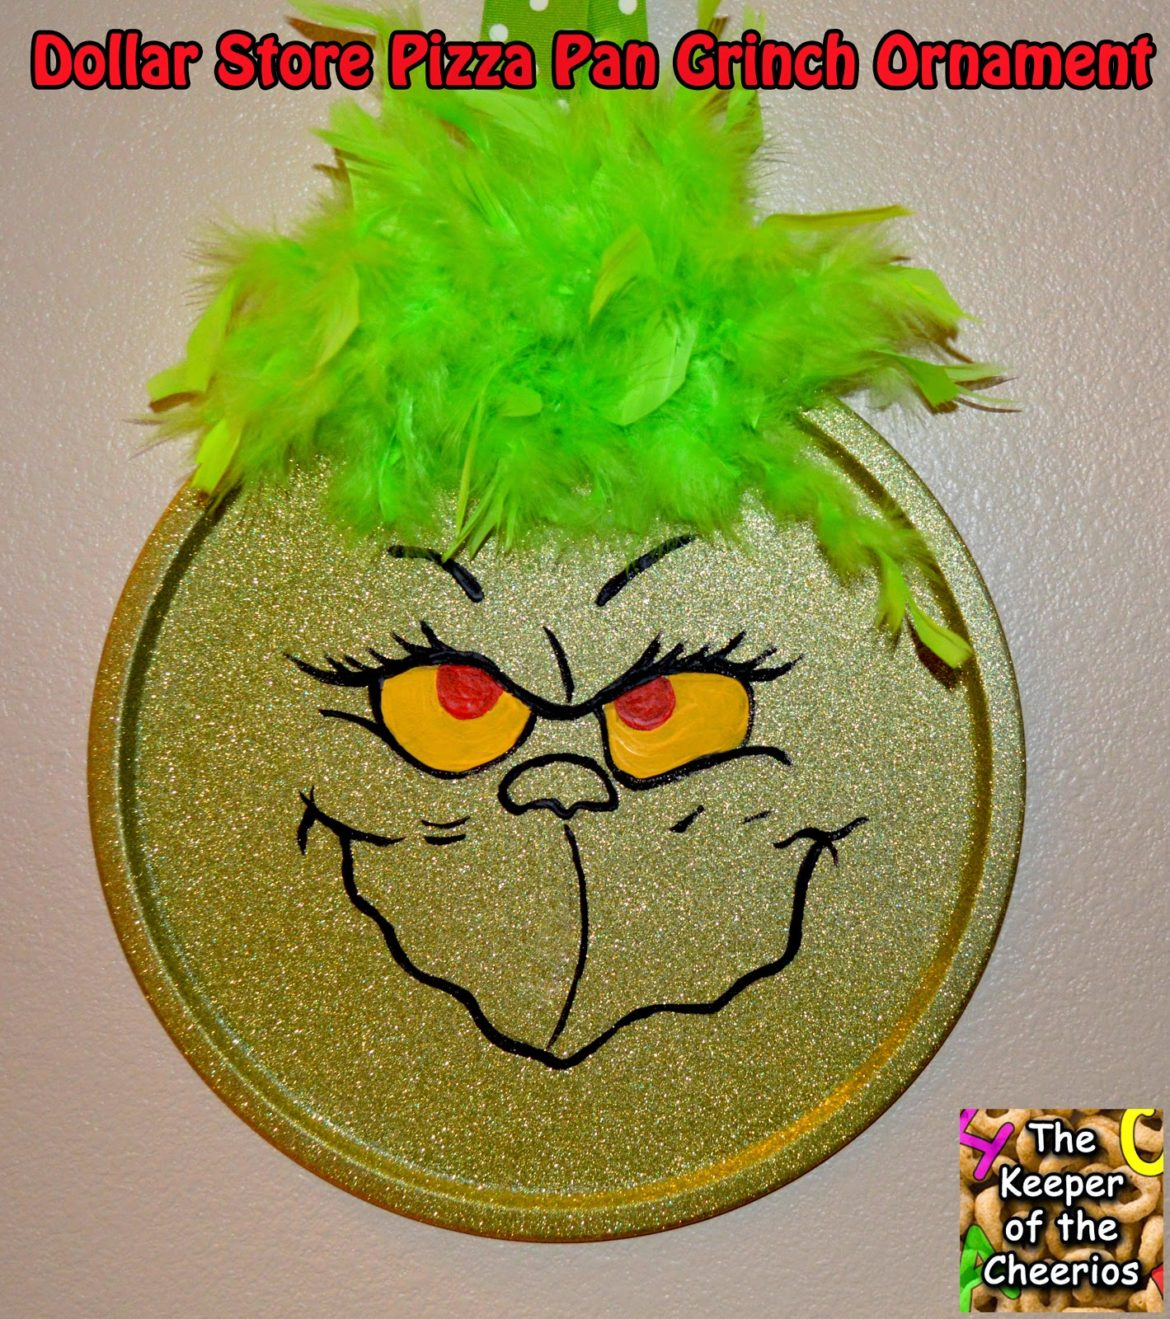 Christmas Decorations The Grinch: Dollar Store Pizza Pan Grinch Ornament